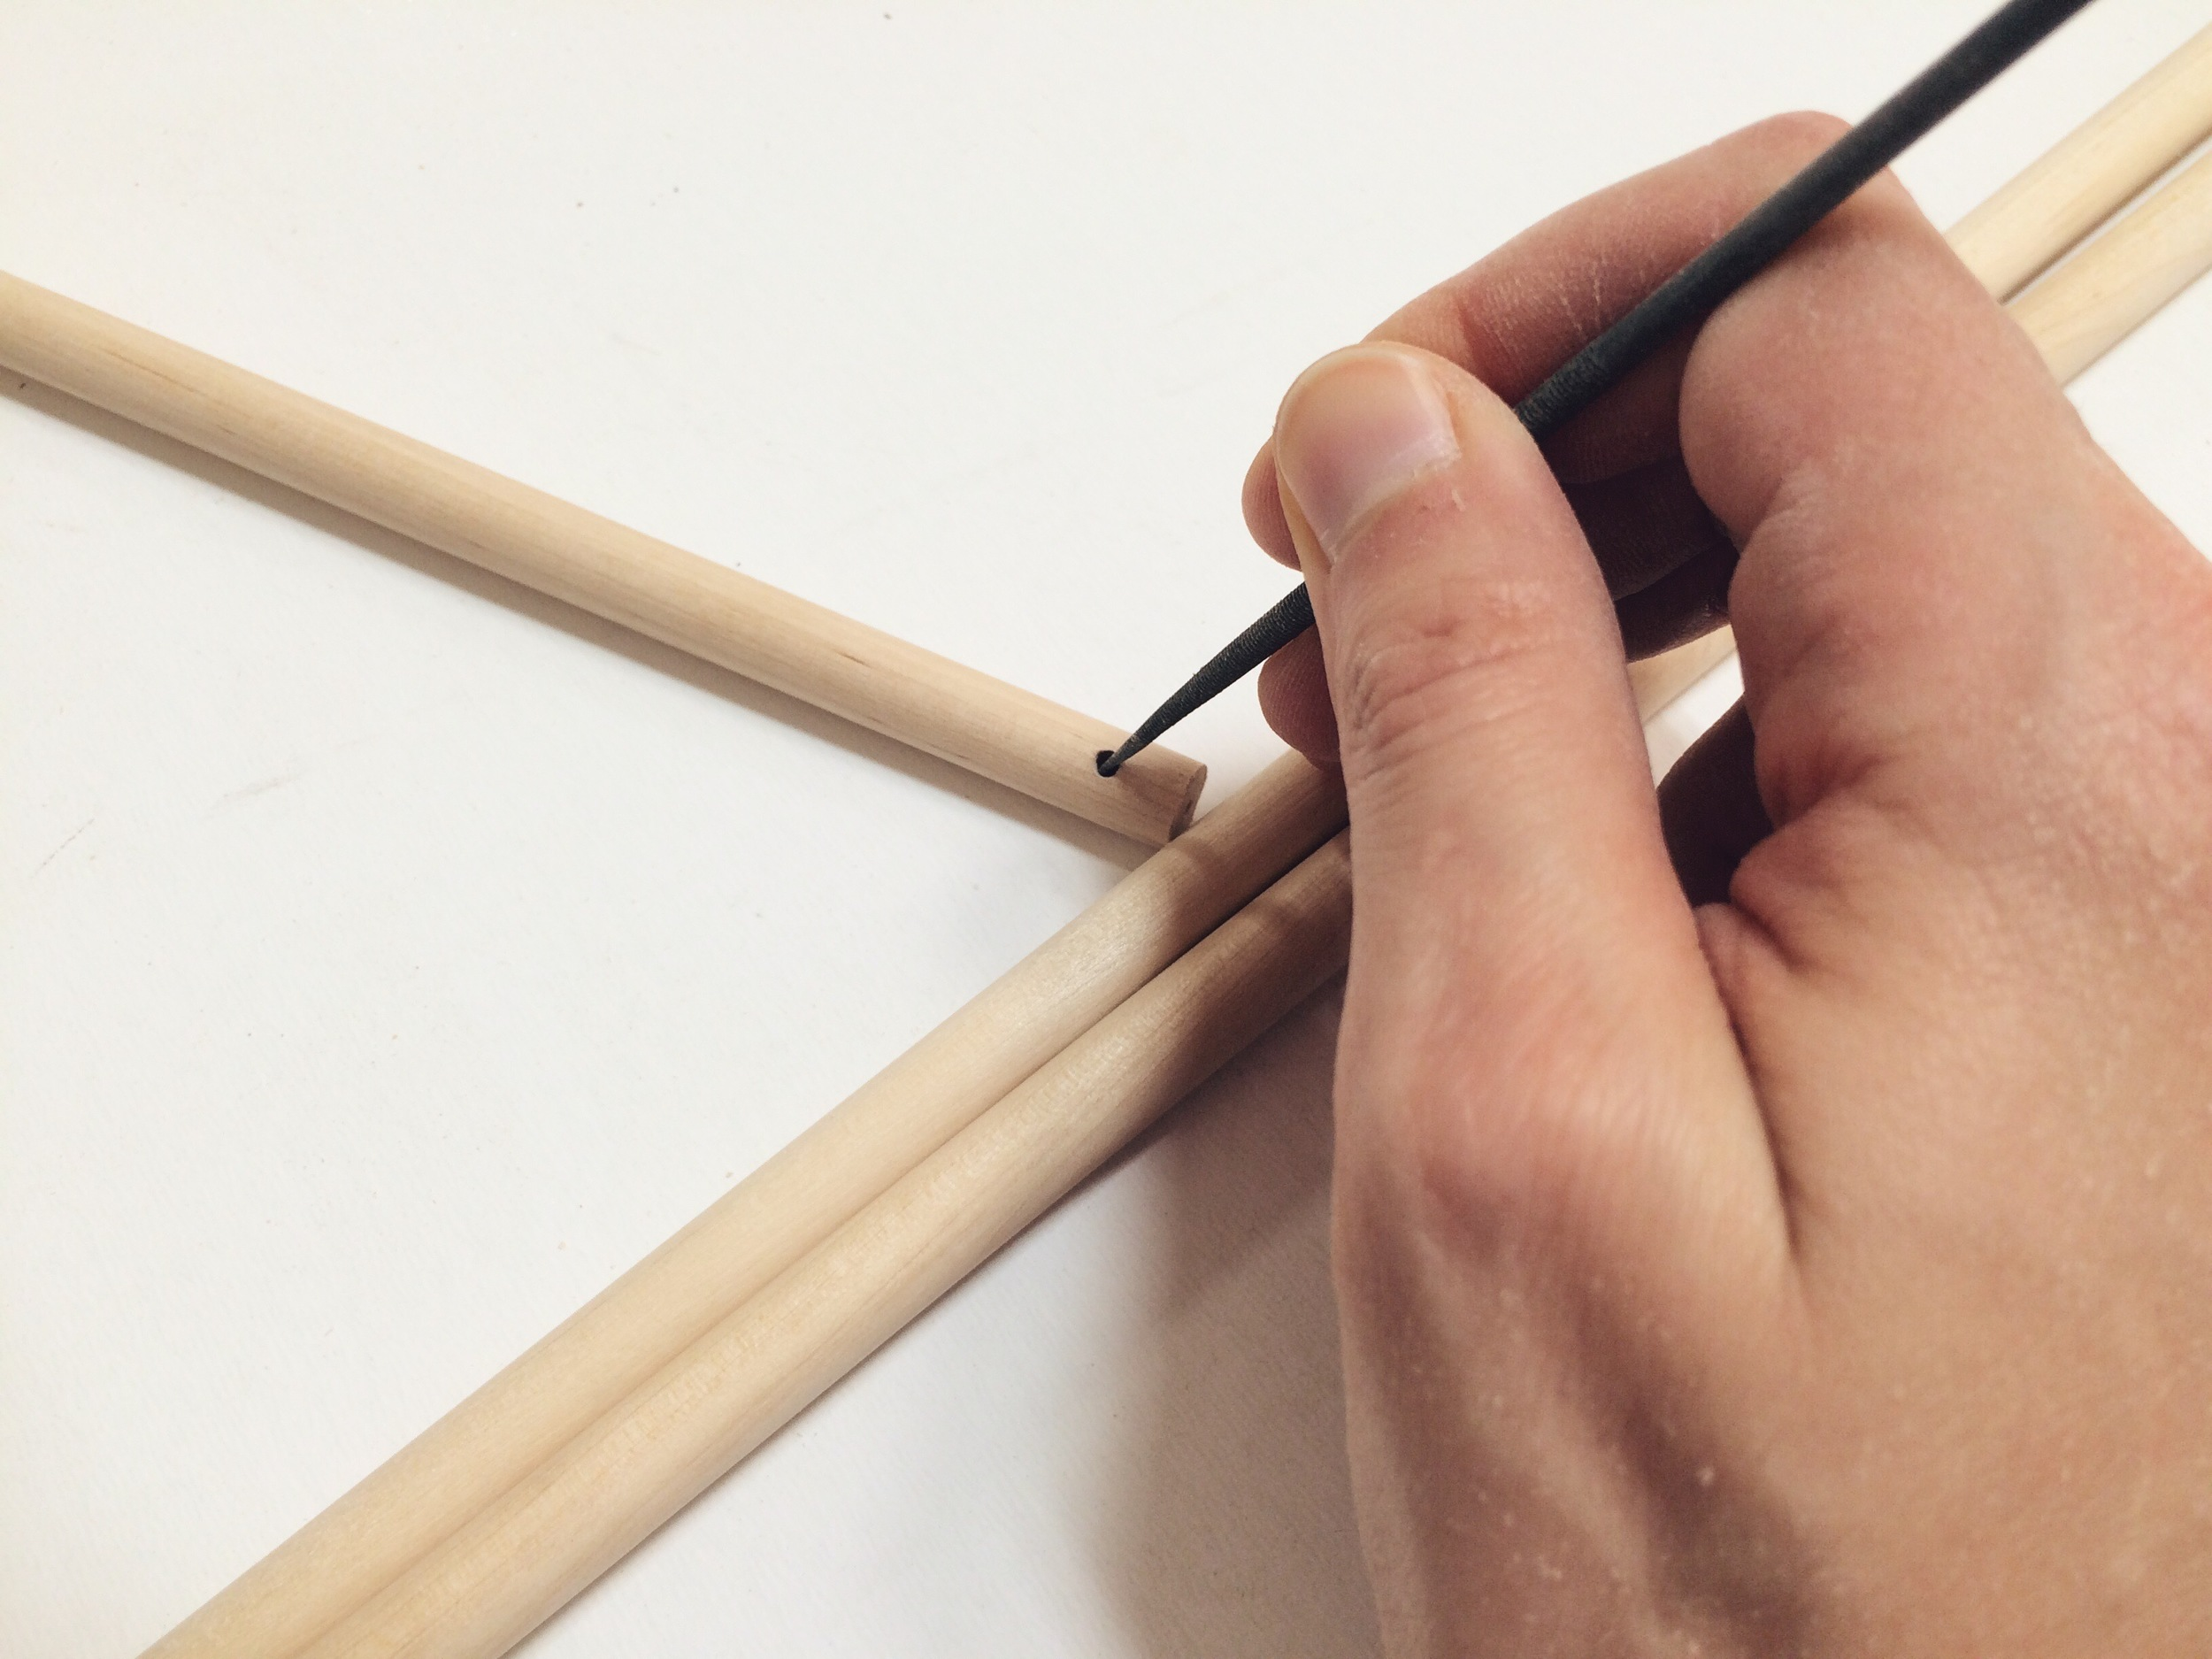 Holes are drilled in the end of the rod, hiding the knot at the end of the string.